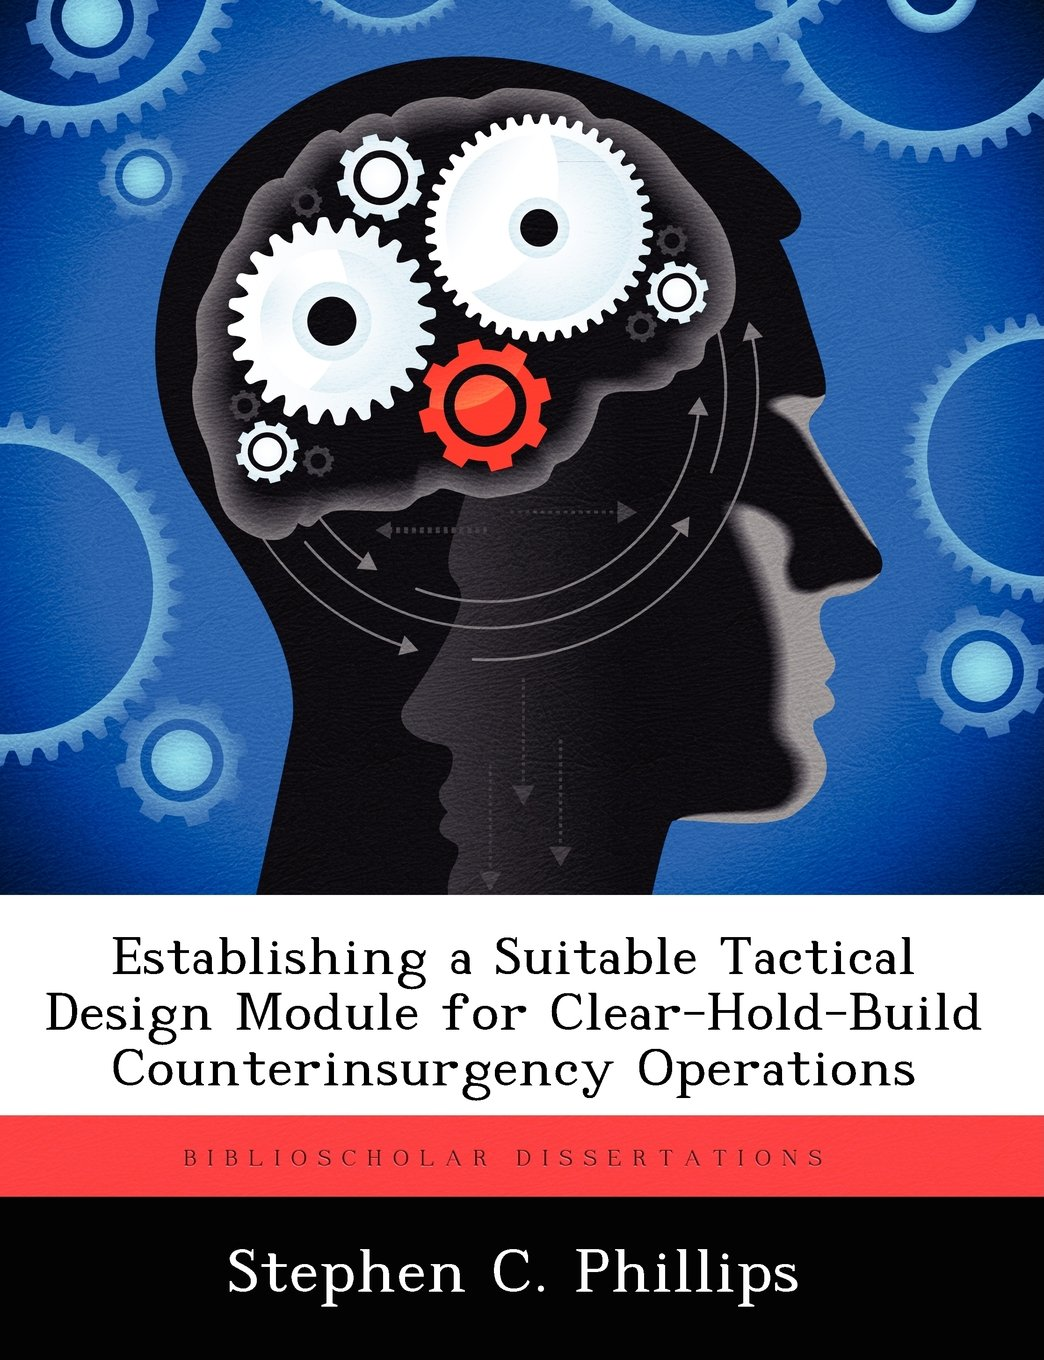 Establishing a Suitable Tactical Design Module for Clear-Hold-Build Counterinsurgency Operations pdf